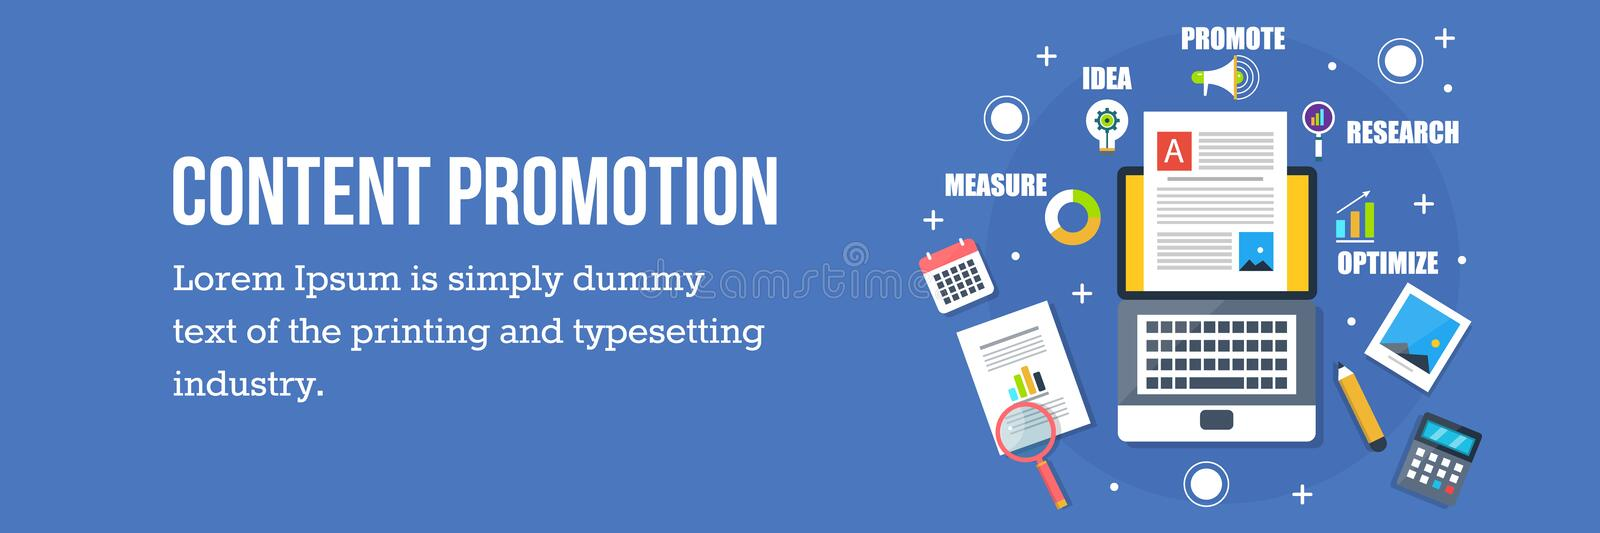 Content promotion concept - flat design vector web banner. Concept of content promotion, research, creation, and optimization with different icons and elements stock illustration